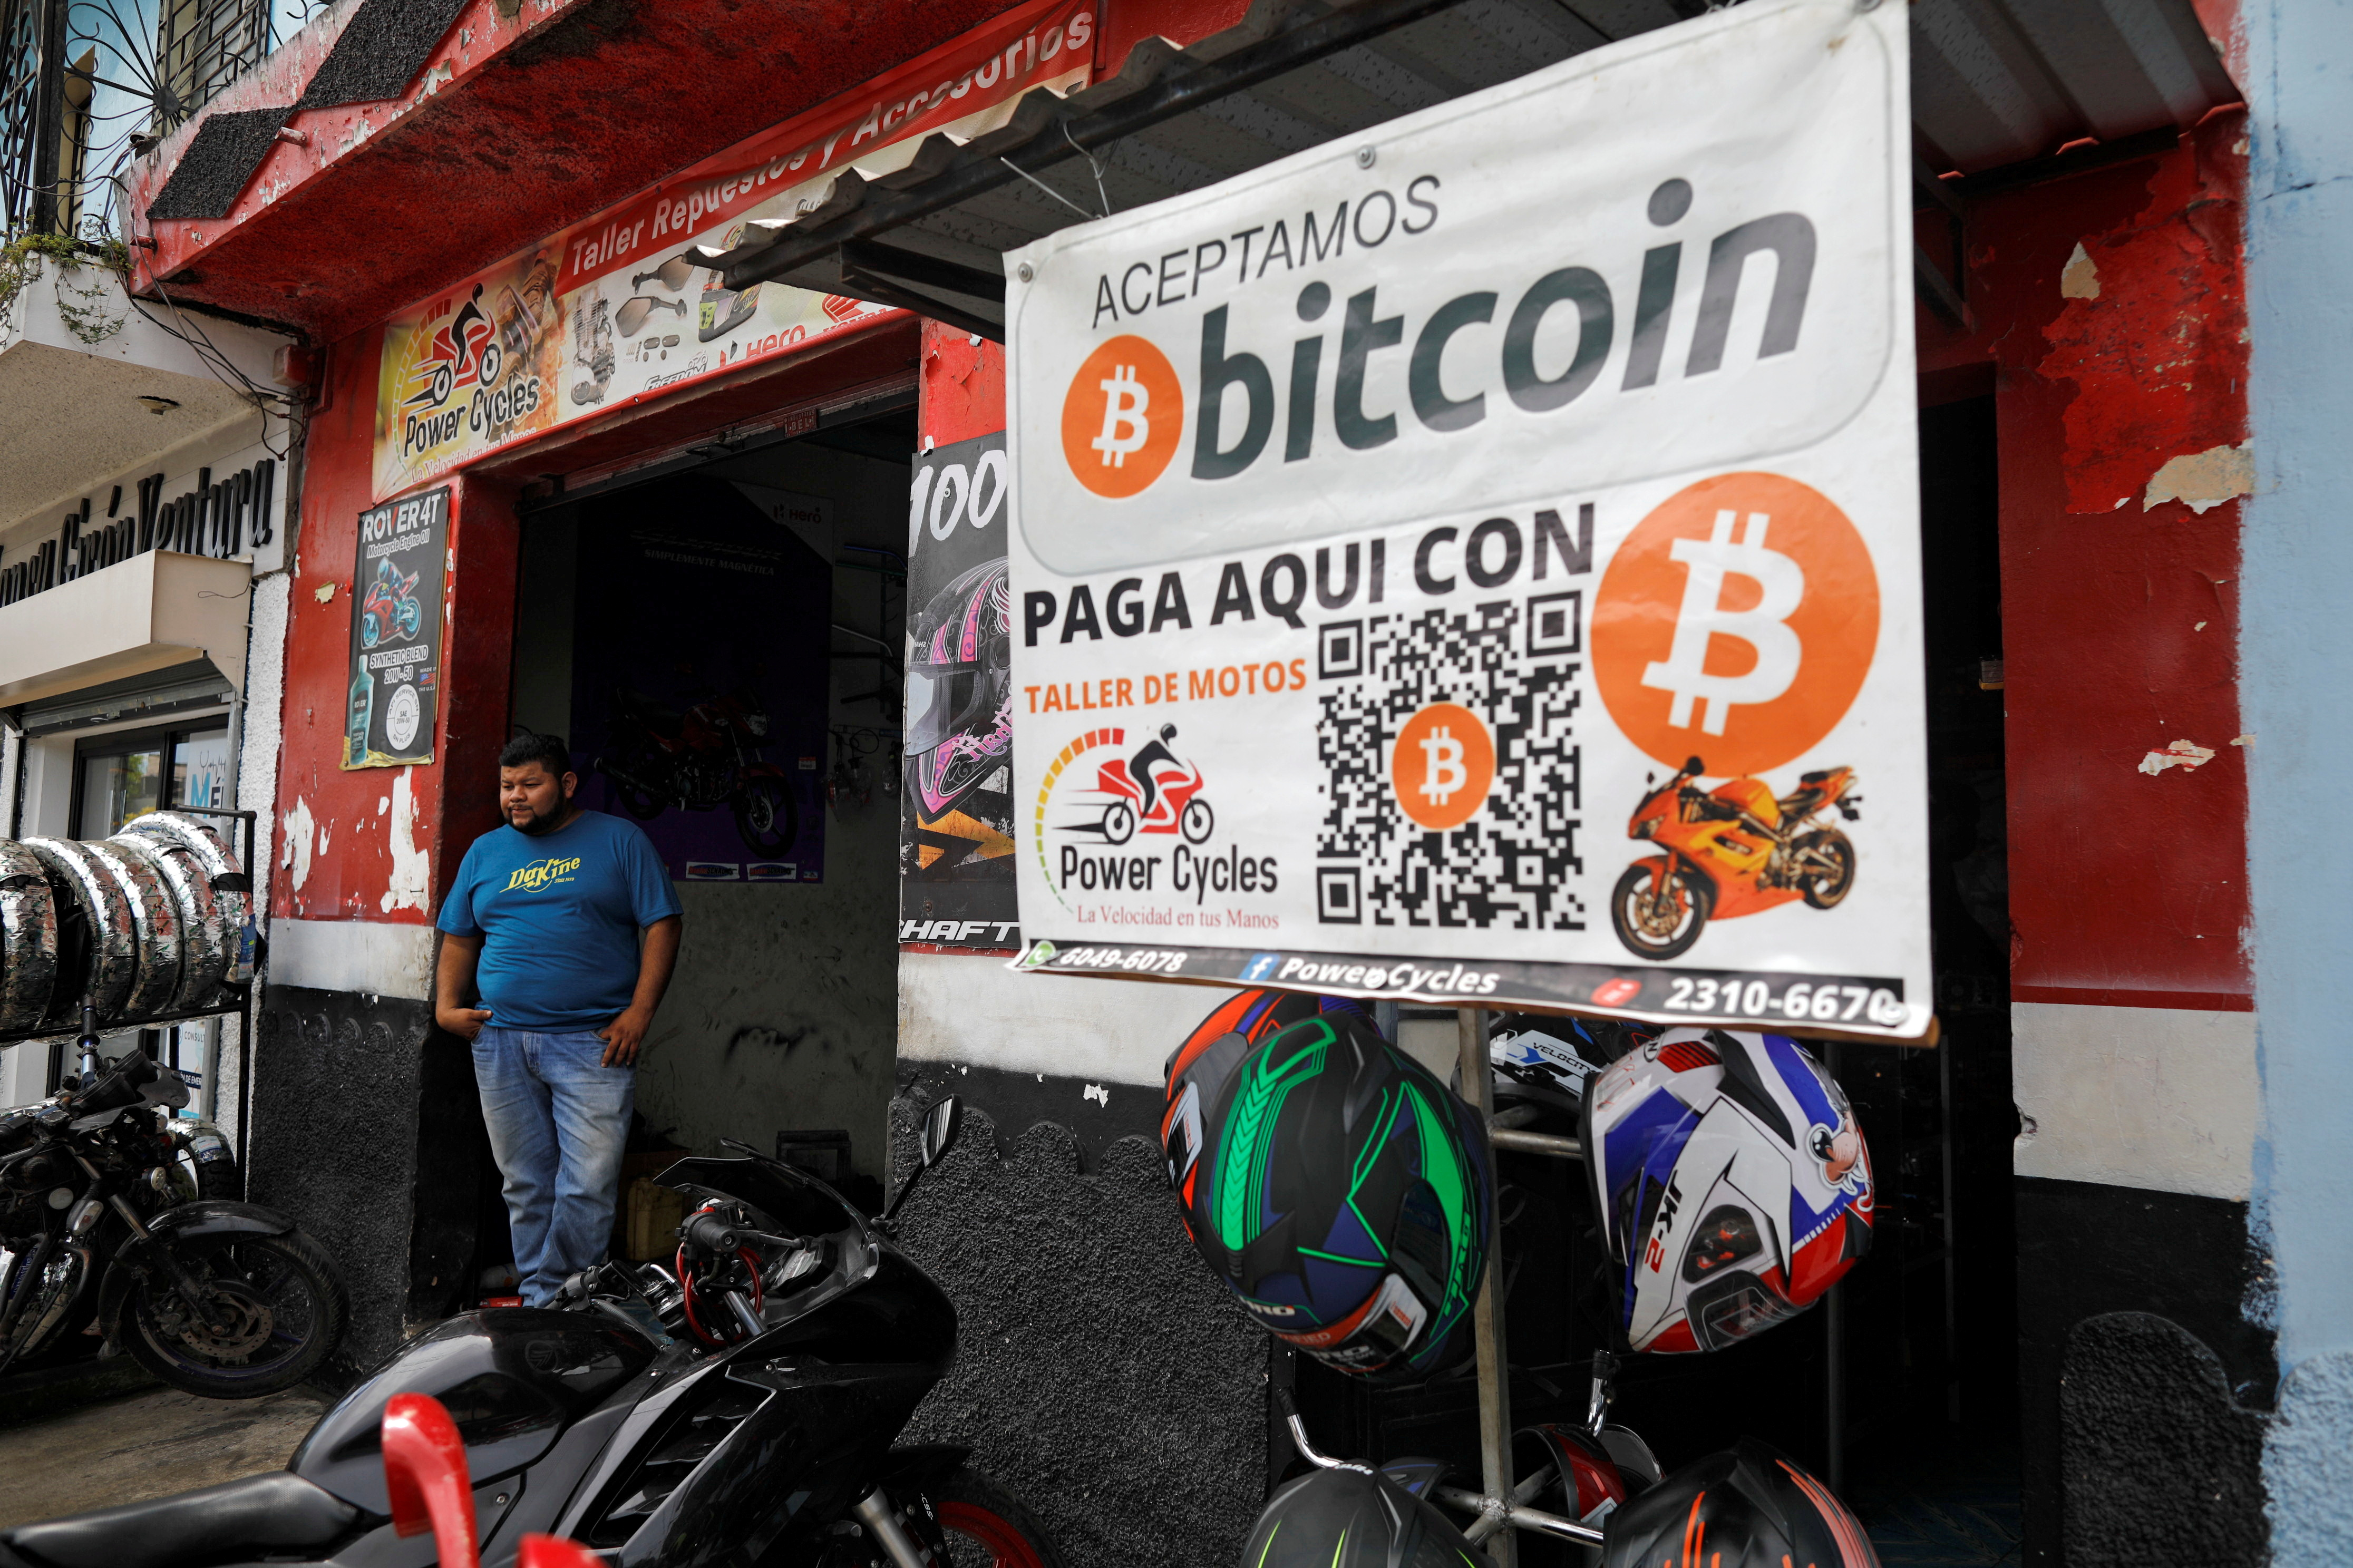 Adoption Of Bitcoin in Countries Such As El Salvador May Be Beneficial to The Other Nations